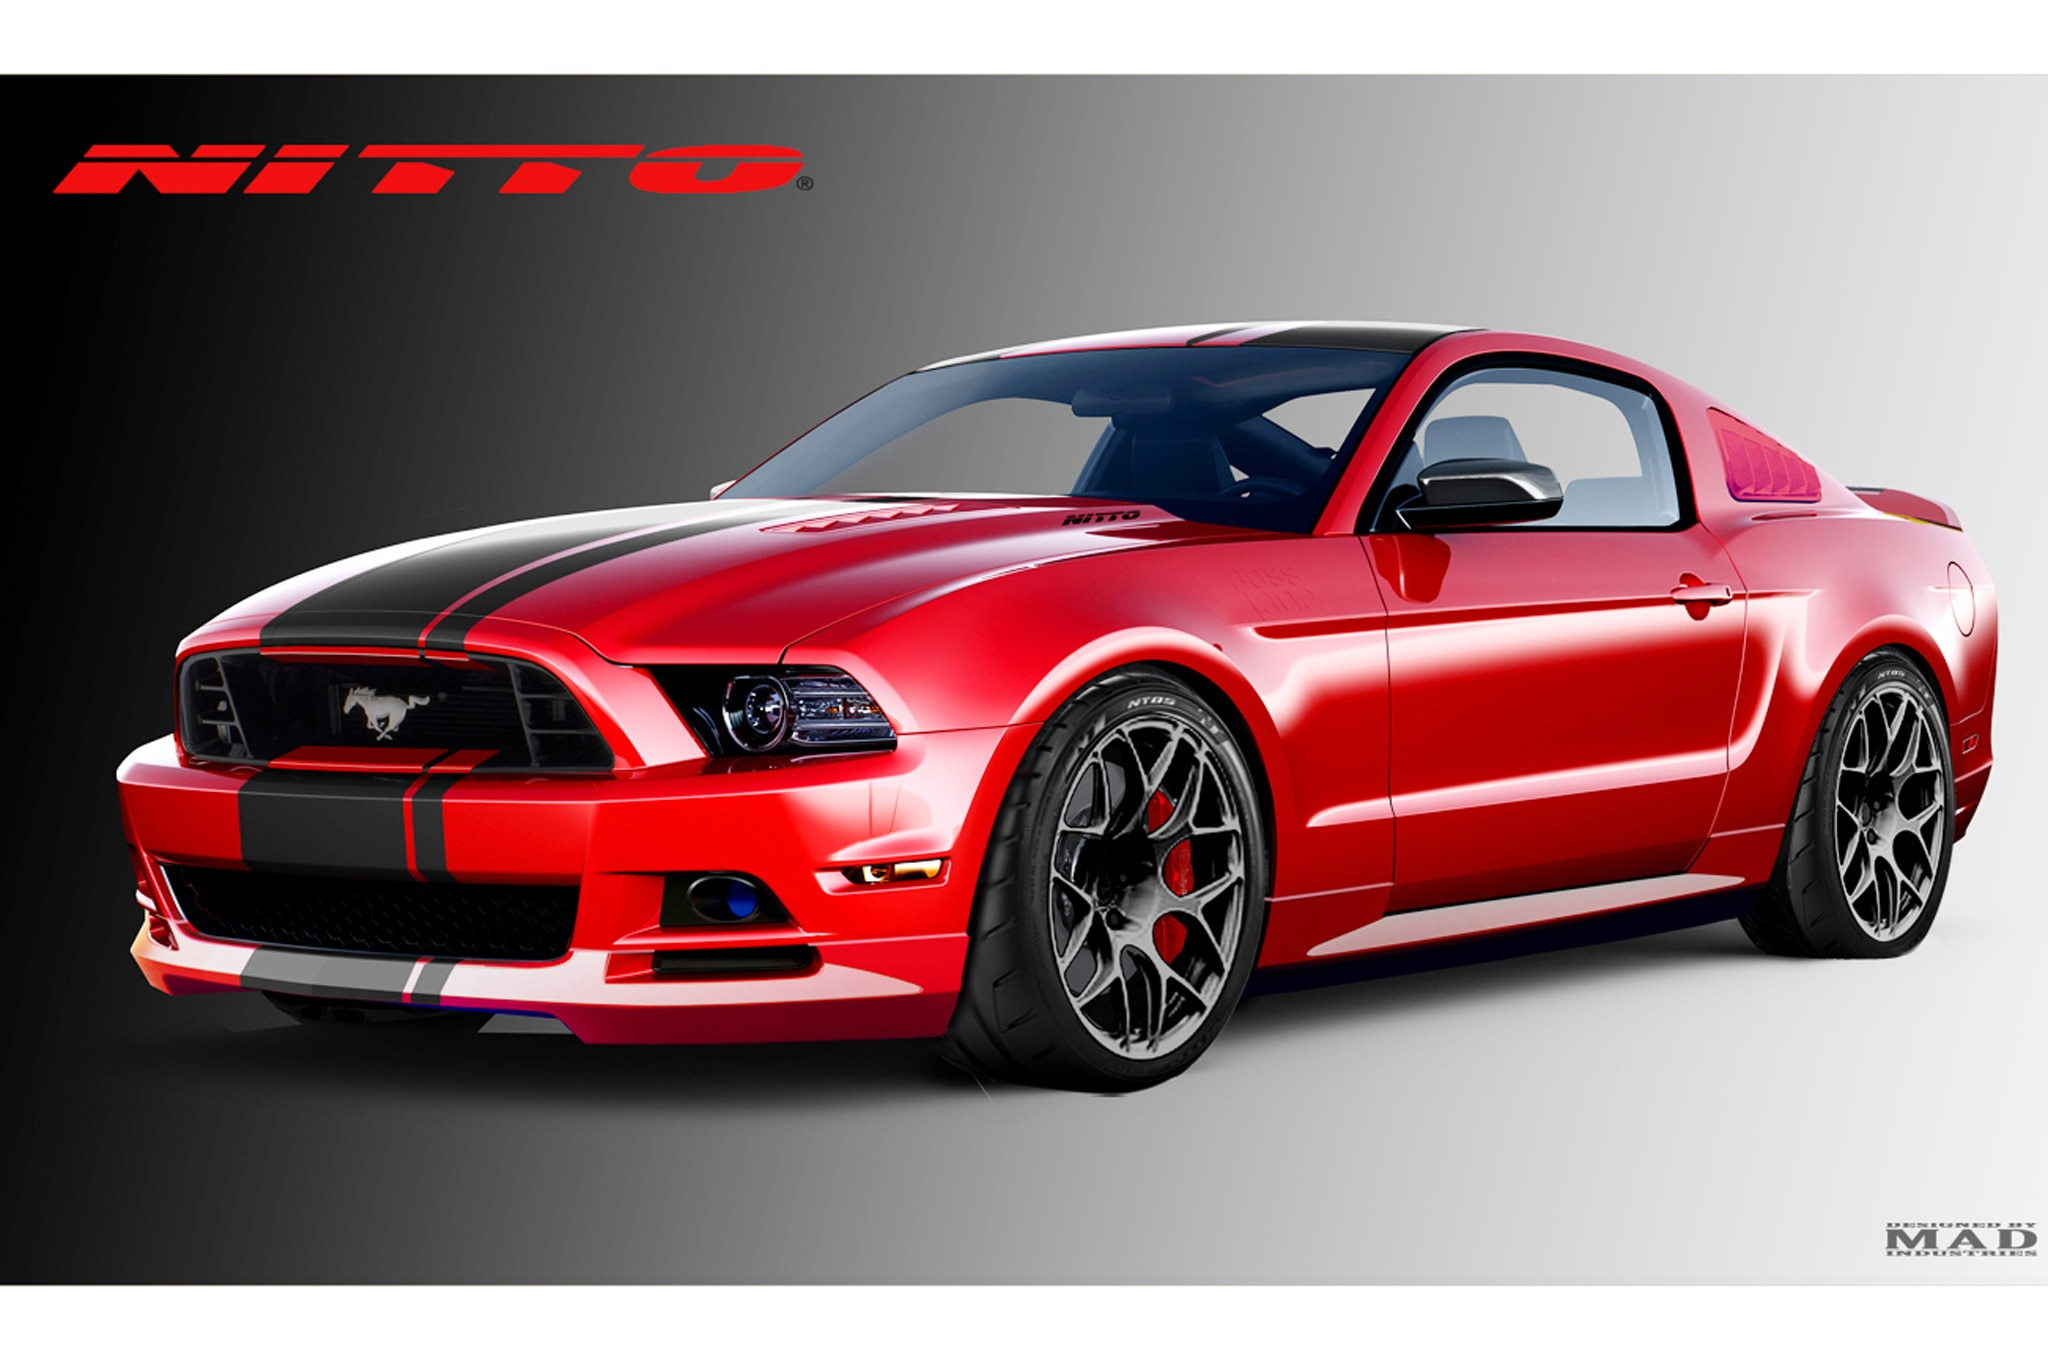 Excellent 2014 Ford Fiesta ST, Mustang GT Modified For 2013 SEMA Show QM26